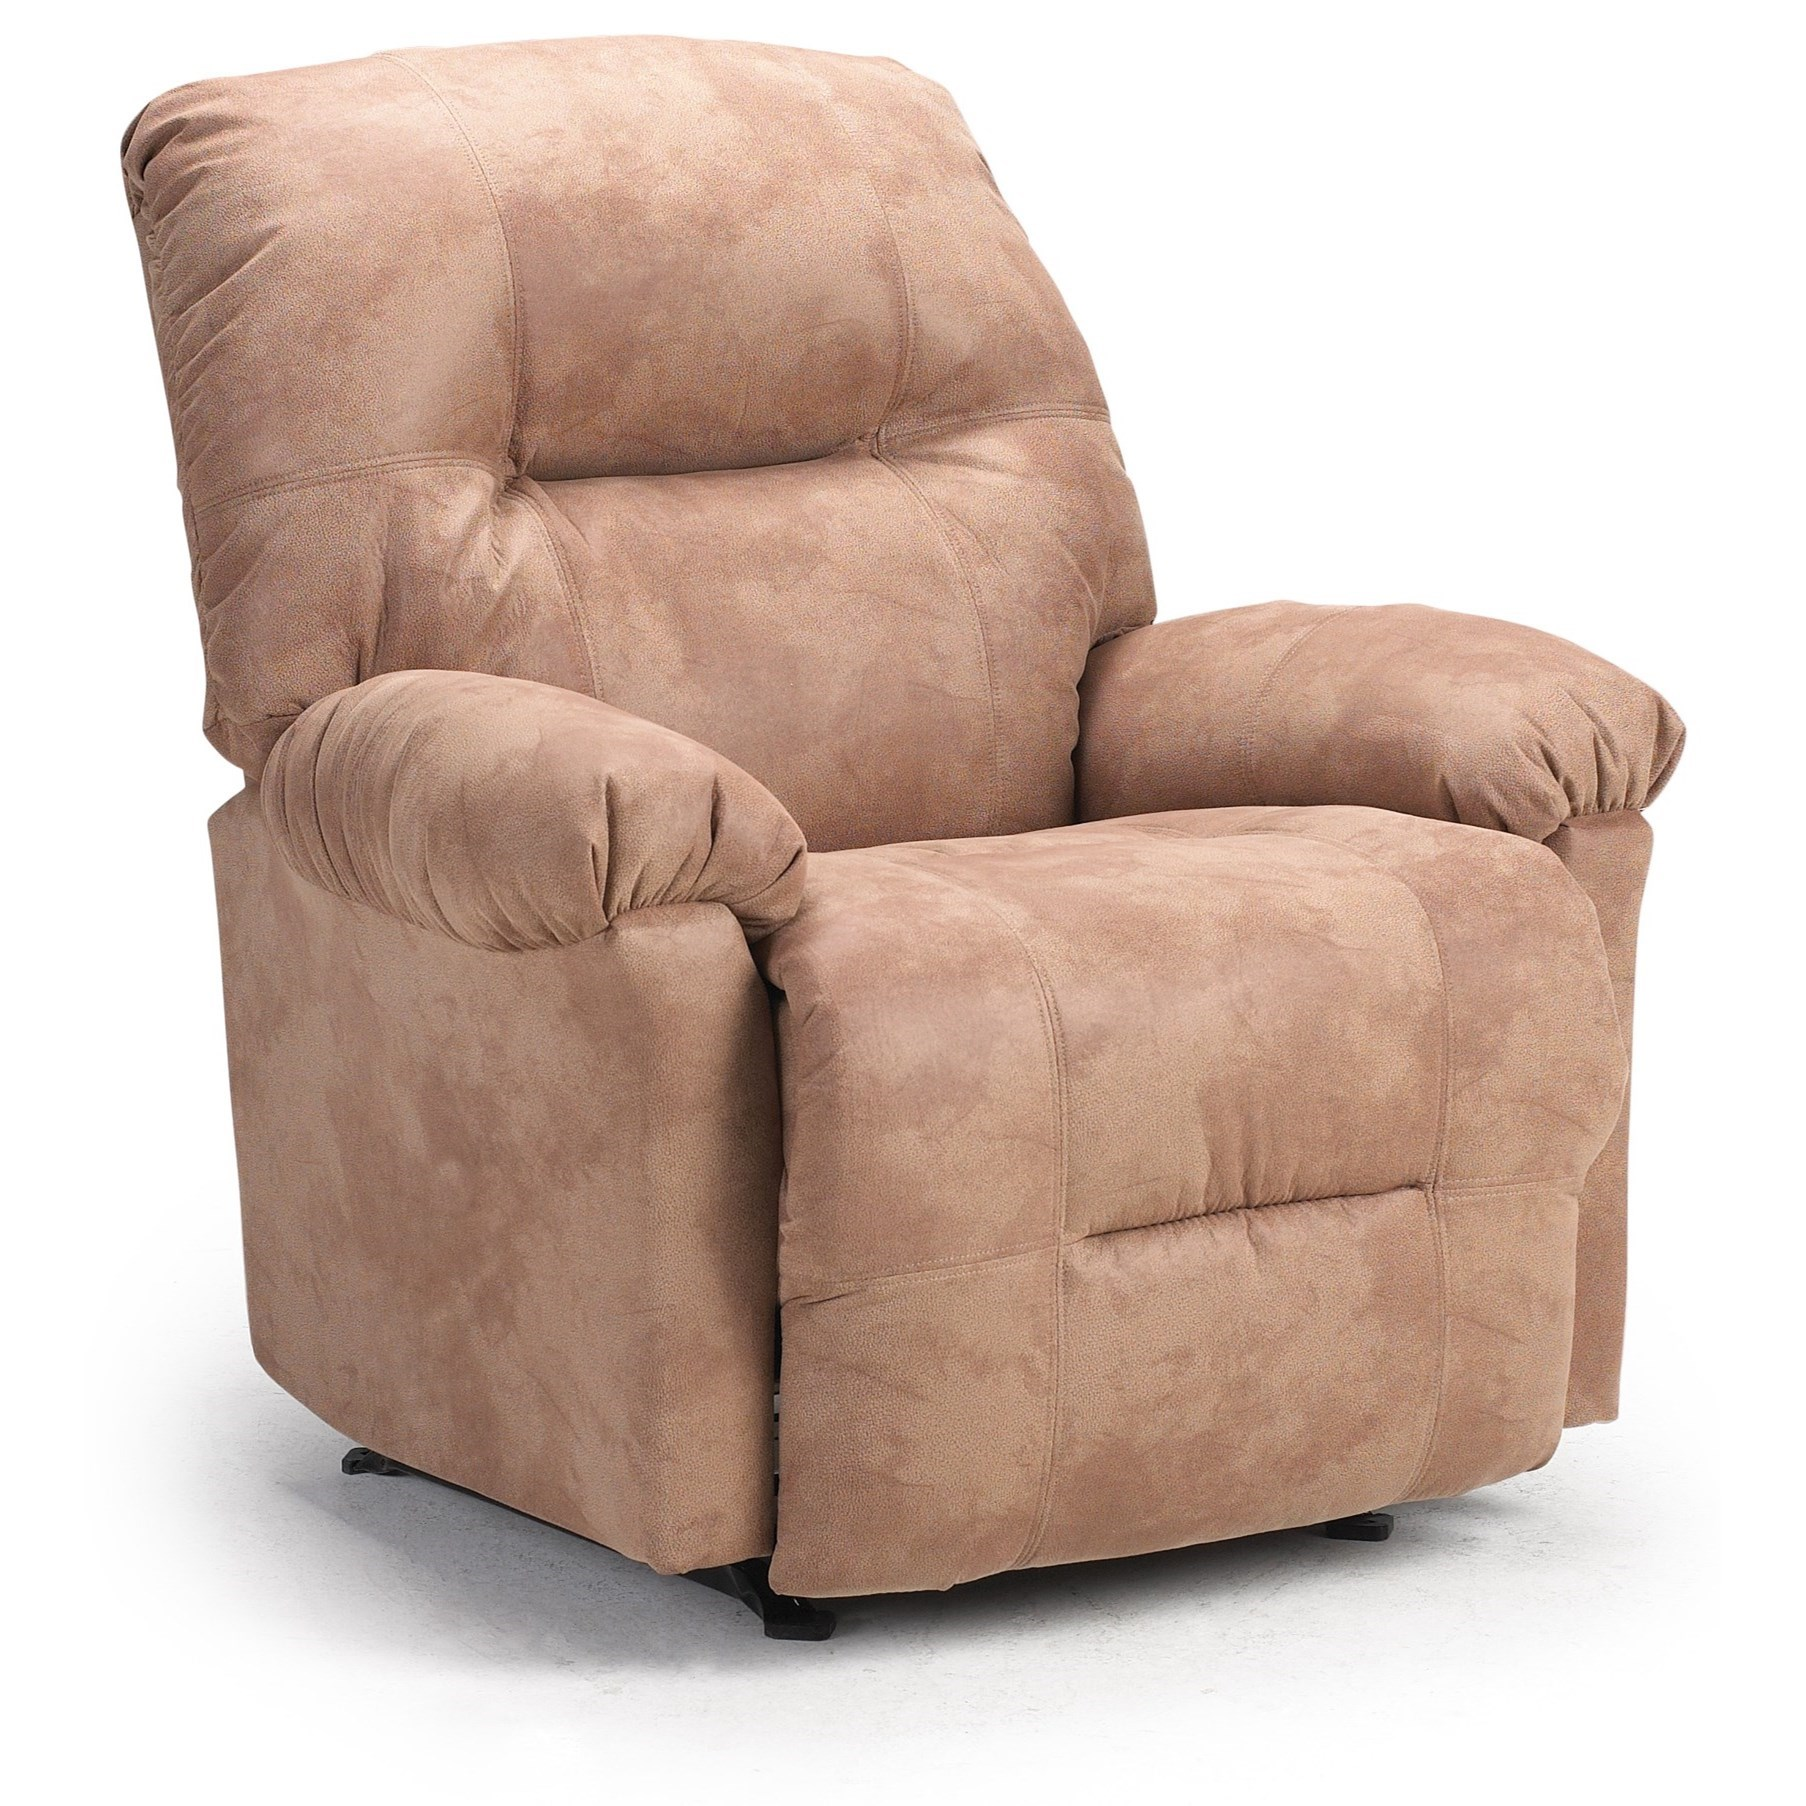 Petite Chairs Best Home Furnishings Petite Recliners 9mw19 1 Wynette